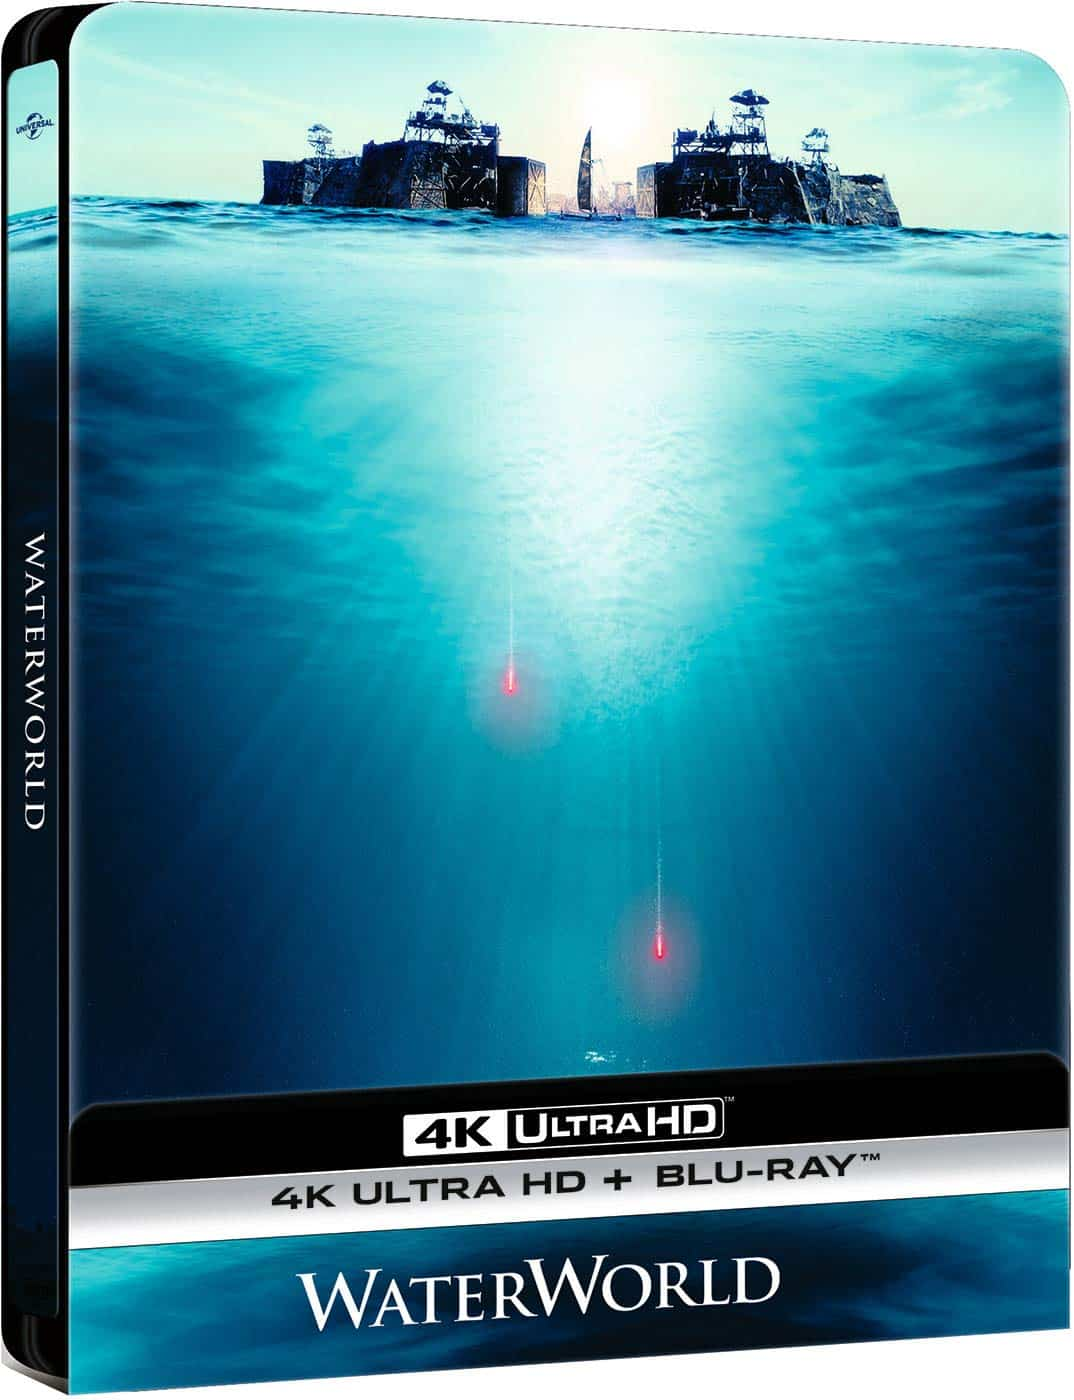 Waterworld (4K UHD + BD) (Ed. Especial Metal) [Blu-ray]